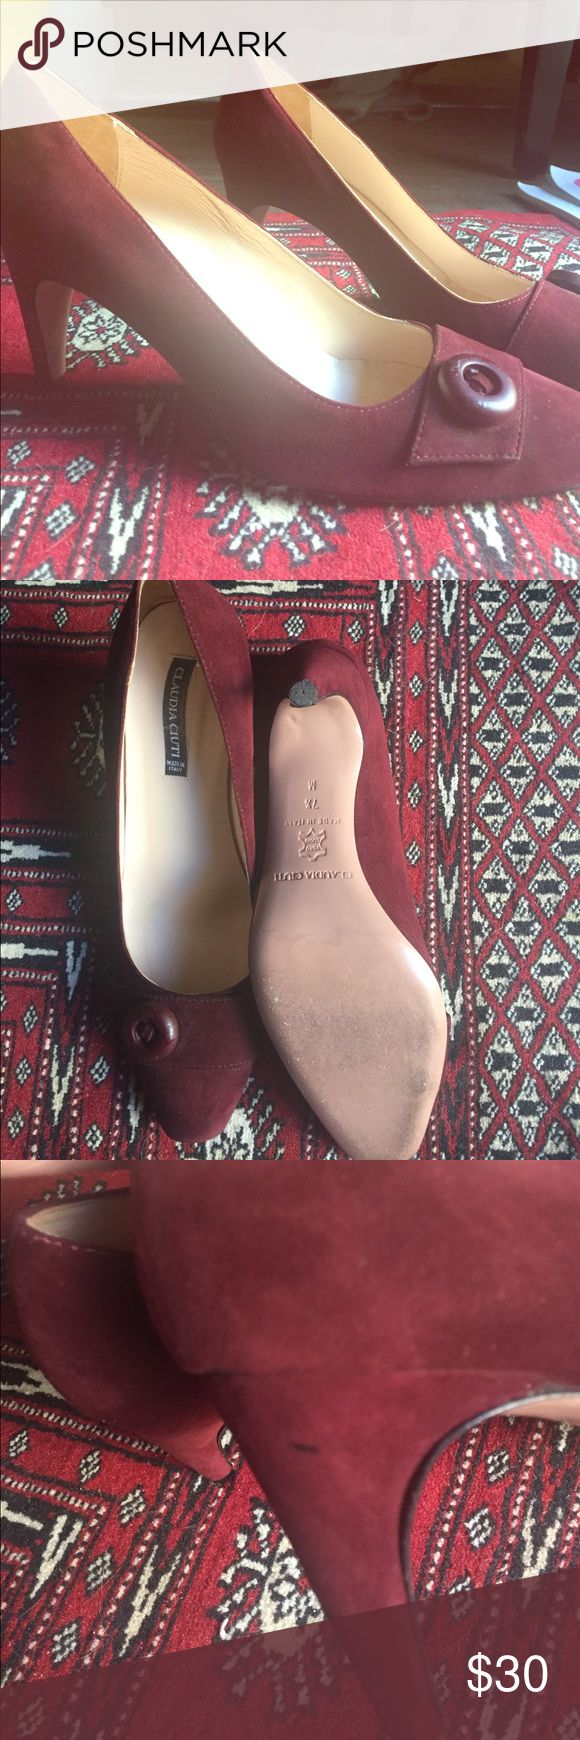 """Handmade Italian Leather Maroon Pumps 2.5"""" heel. Gently used, worn no more than 3 times. Minor scuffing as pictured. No trades, no PayPal. Claudia Ciuti Shoes Heels"""